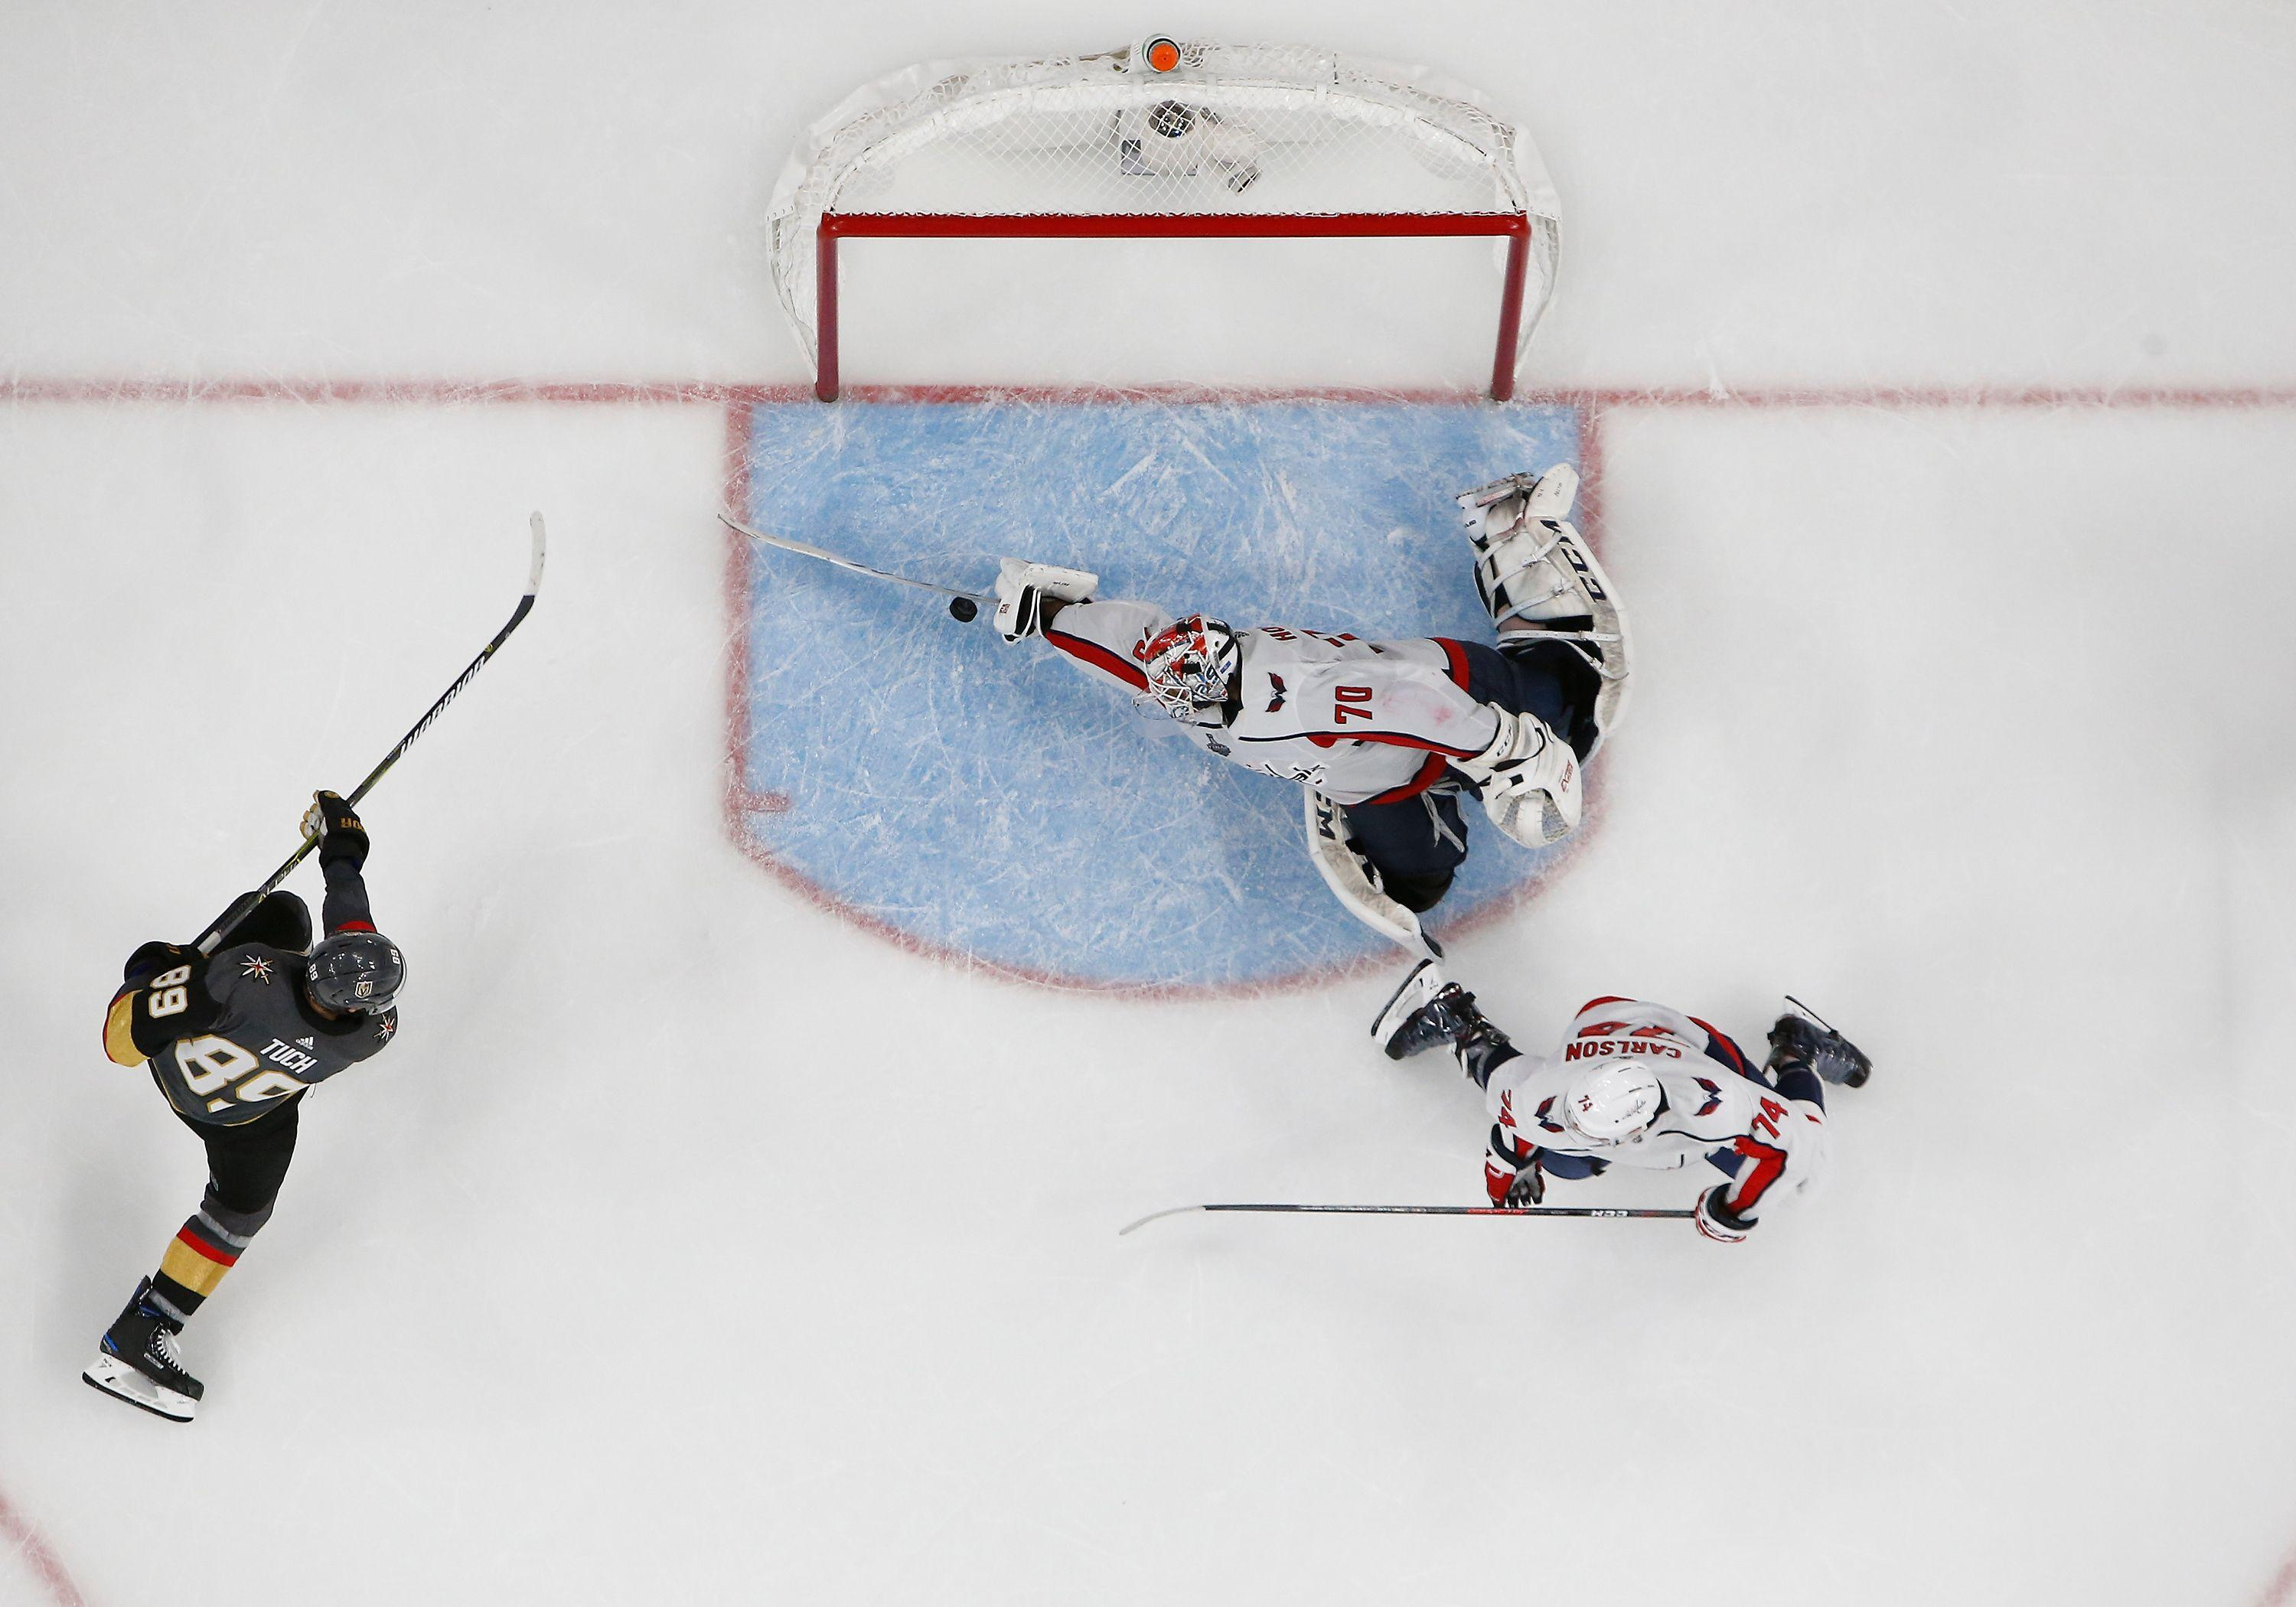 An NHL photographer captured an incredible image of Holtby's save